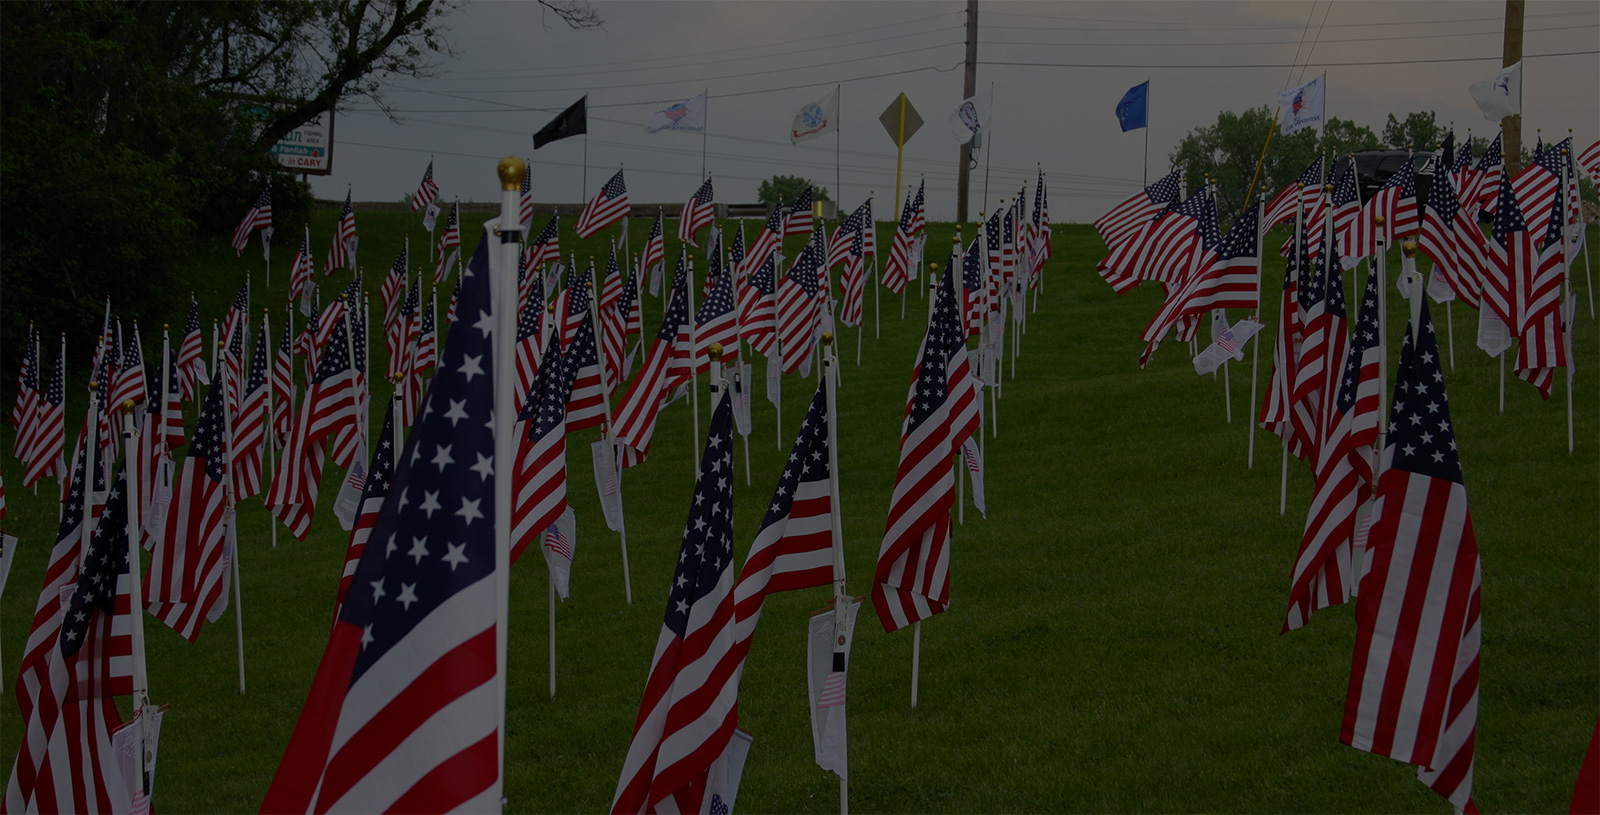 Memorial Day Field to the Fallen May 24th – May 27thMemorial Day Field to the Fallen May 24th – May 27th